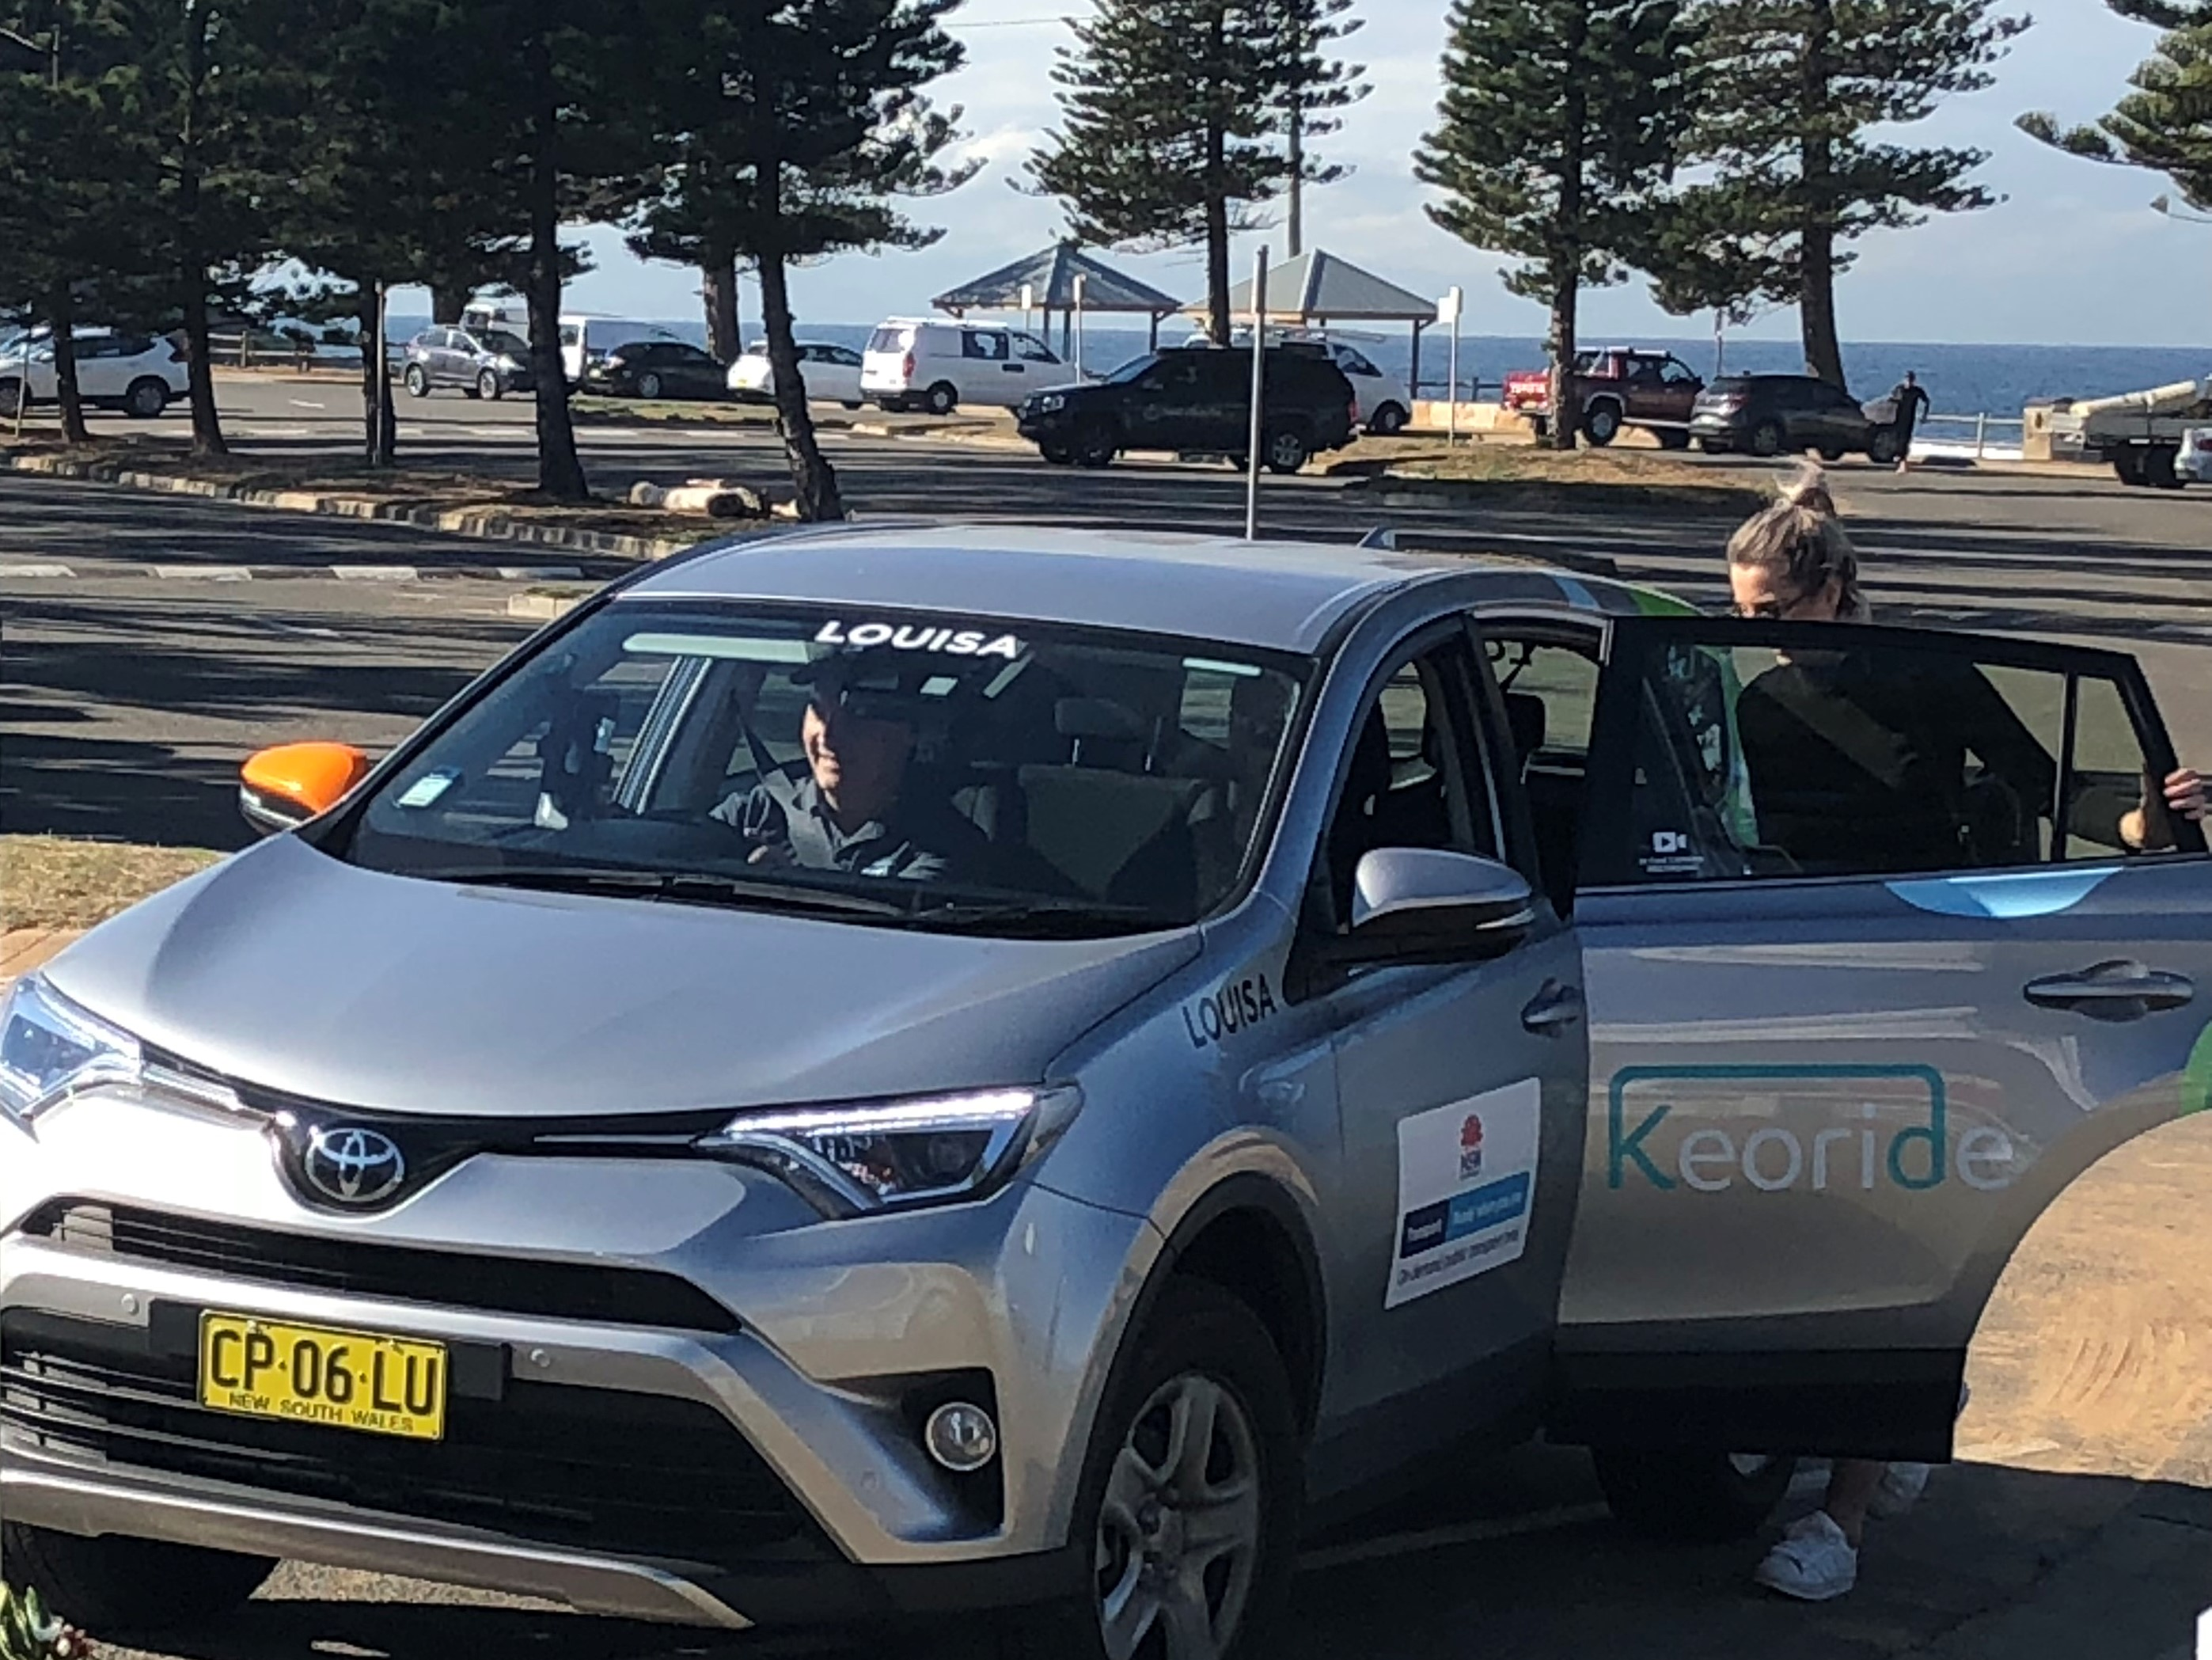 The popular Keoride On demand service in the Northern Beaches is extended until June 2020